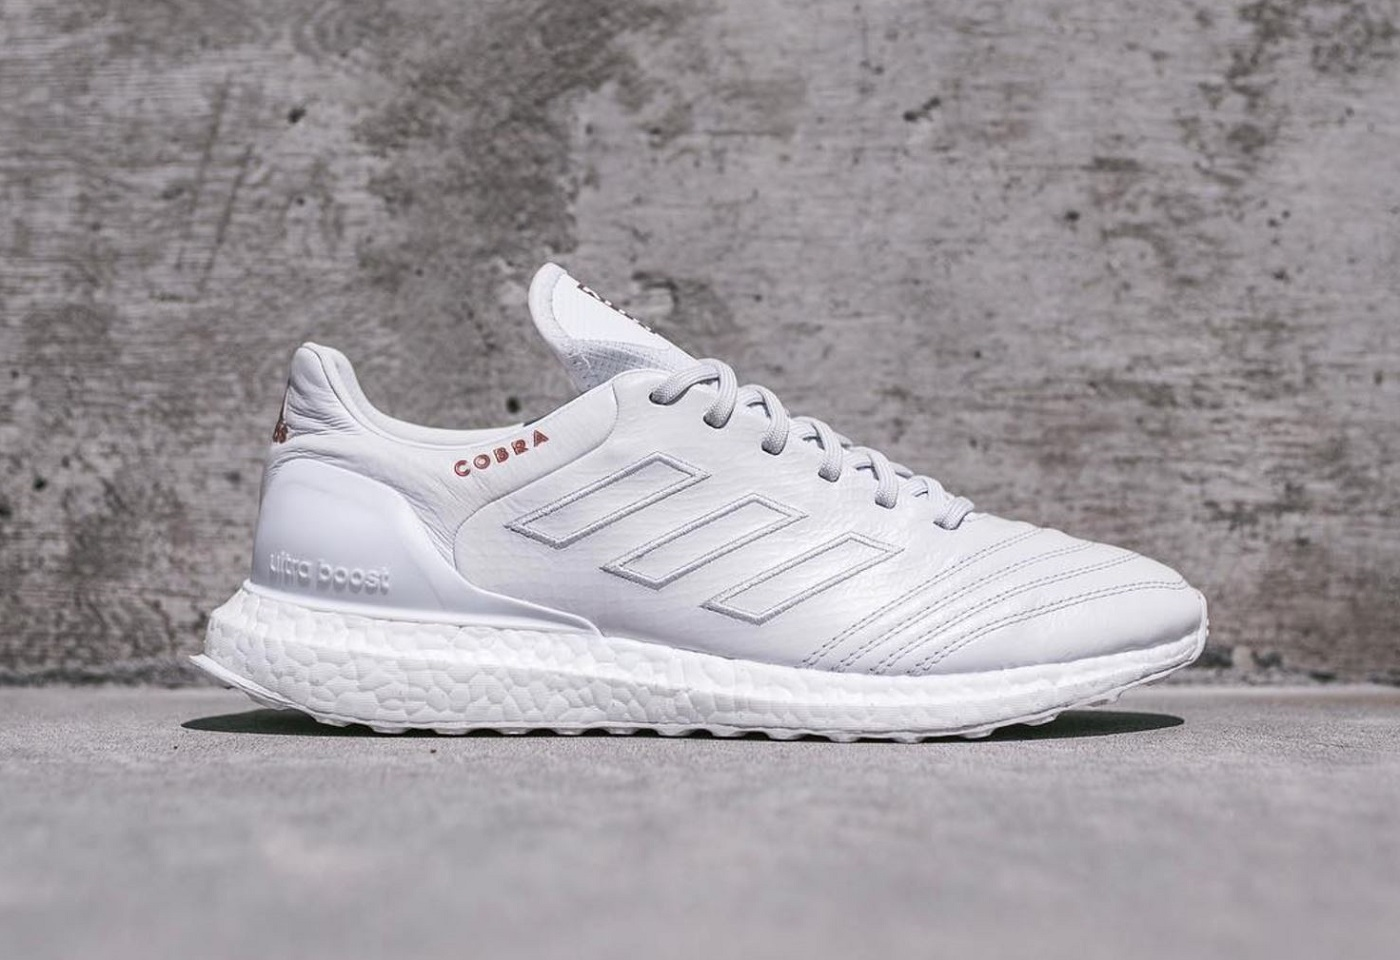 finest selection 249f4 89d6f Kith x adidas Soccer COPA Mundial 17 UltraBOOST – A snakeskin-embossed  kangaroo leather upper with an UltraBOOST midsole.